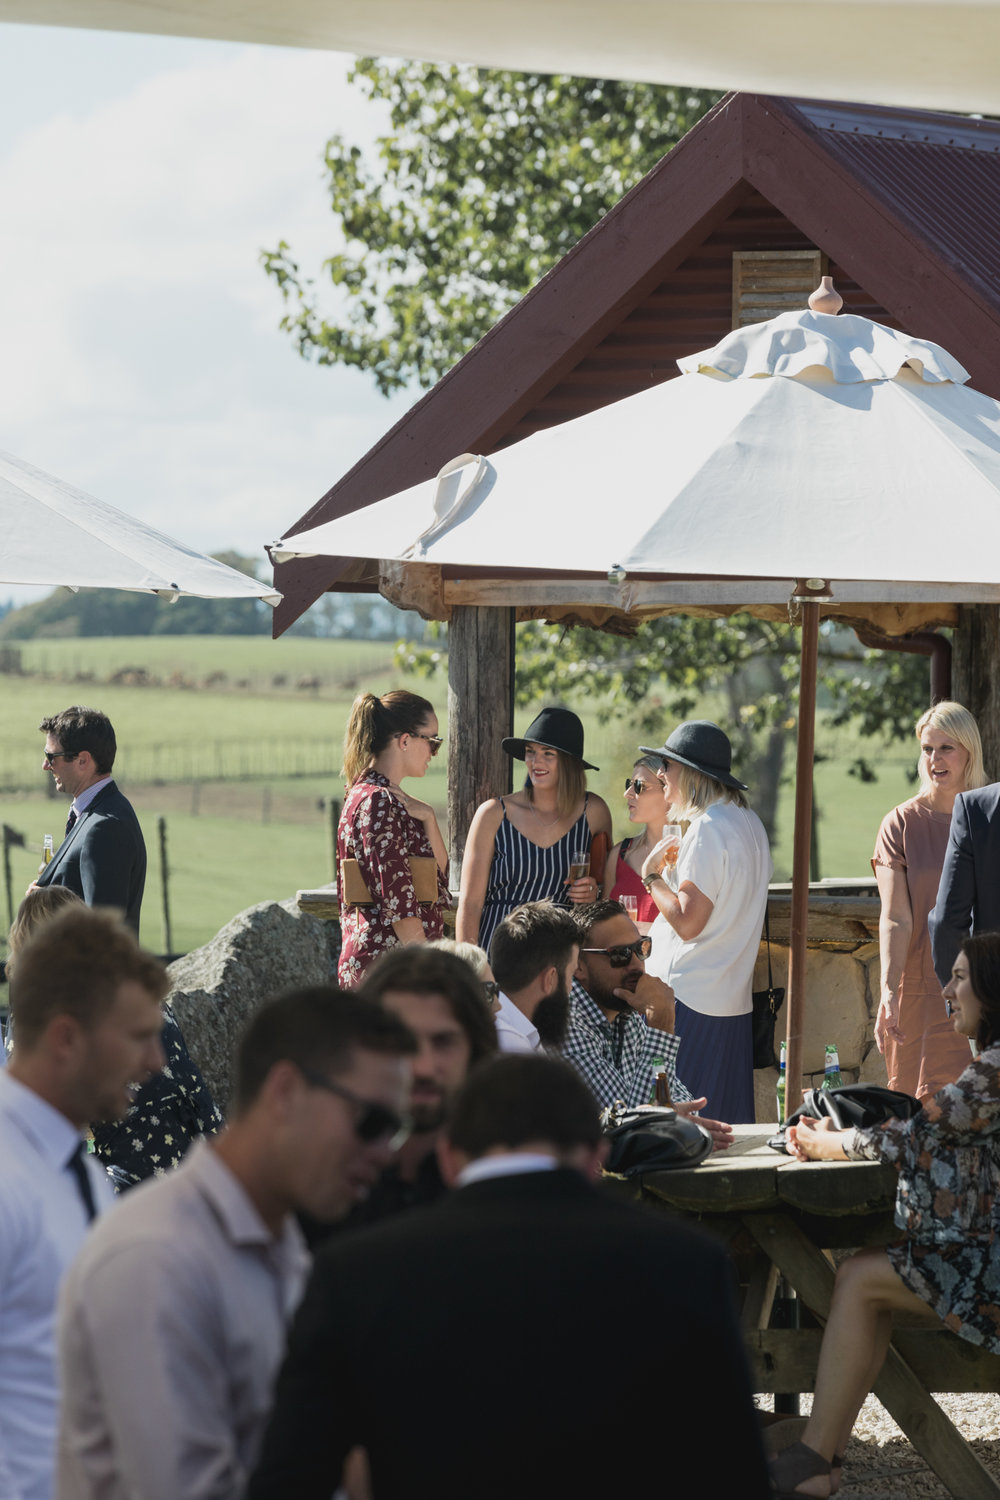 wedding-at-the-red-barn-new-zealand-wedding-photographer-guests-under-umbrellas.jpg